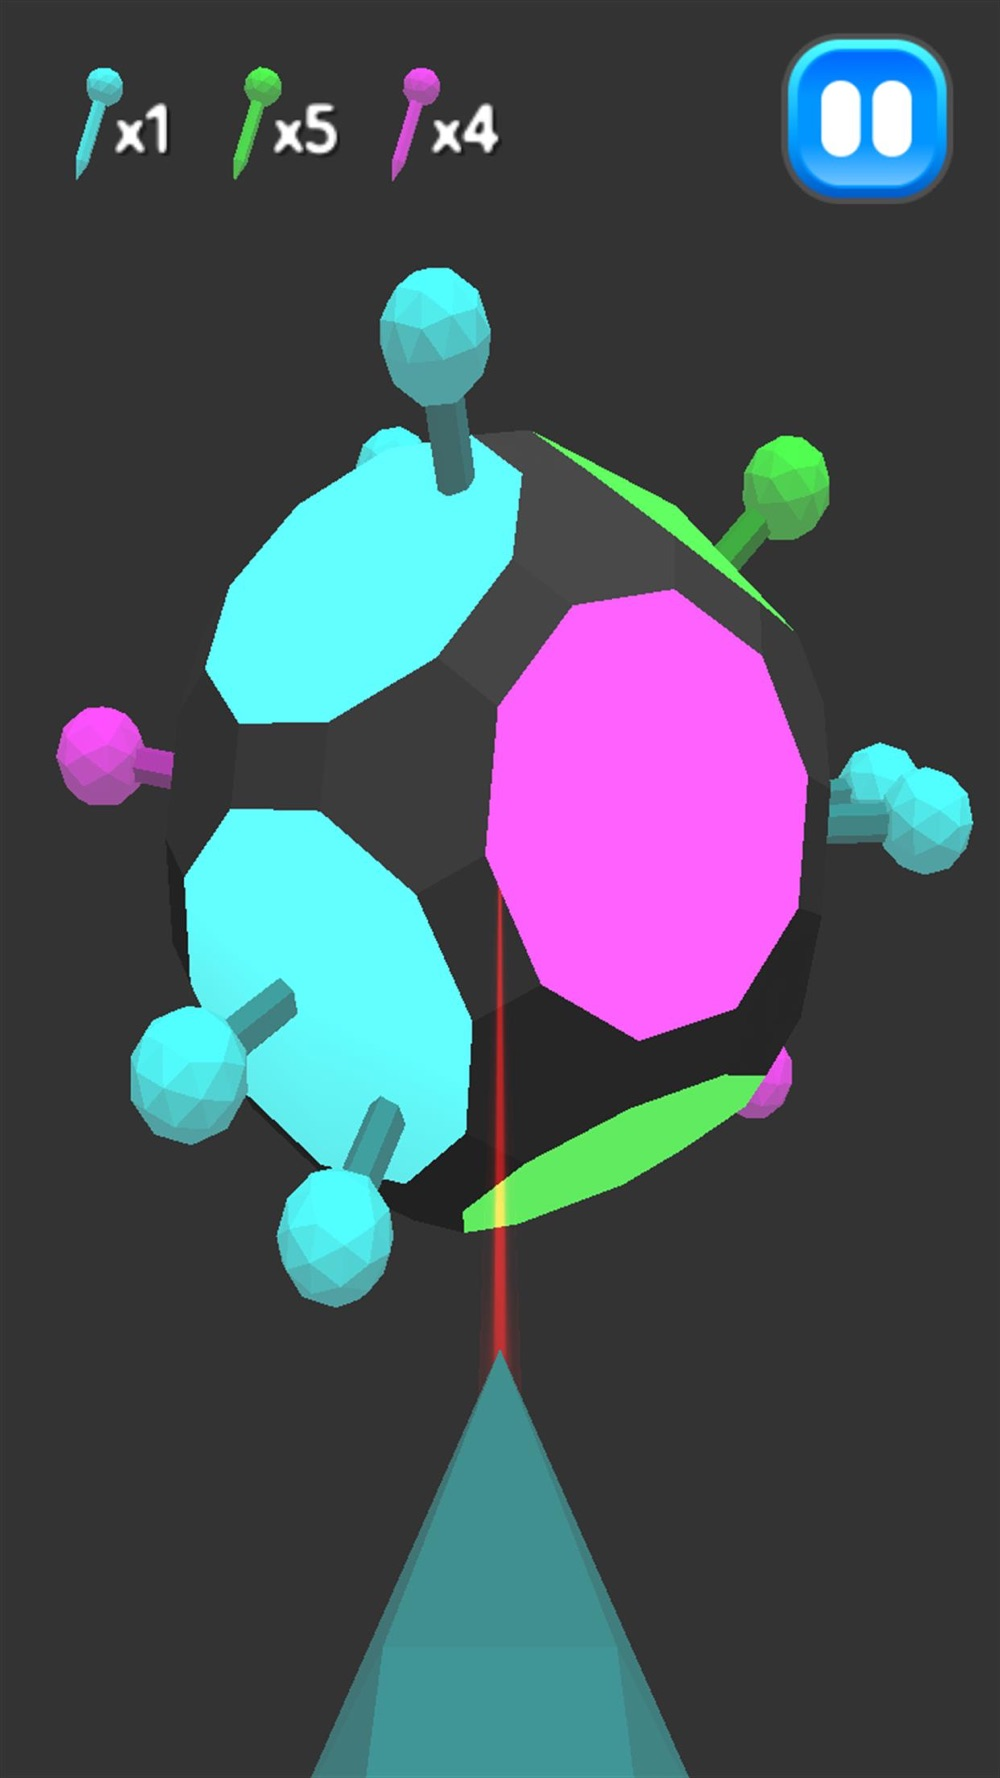 Color Stick Ball - AA 3D Play Style hack tool